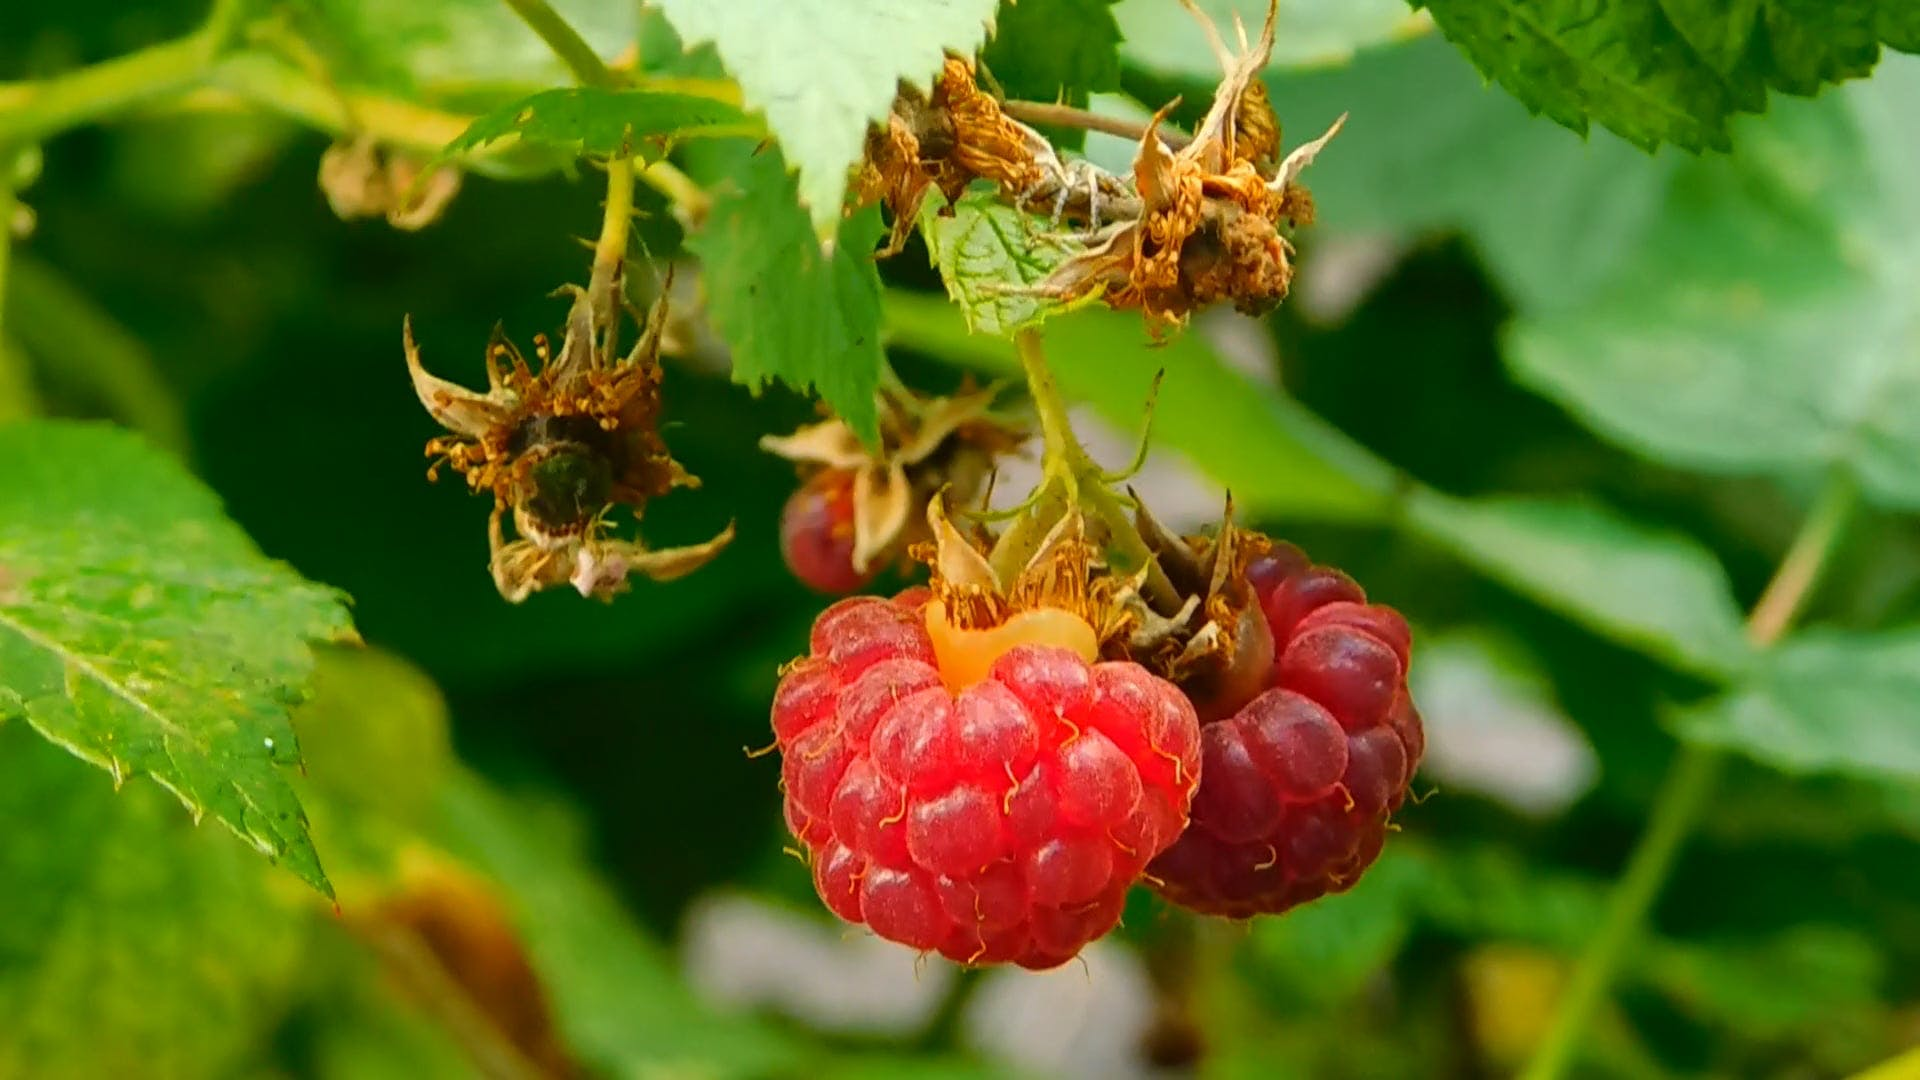 Raspberries Hanging On Tree